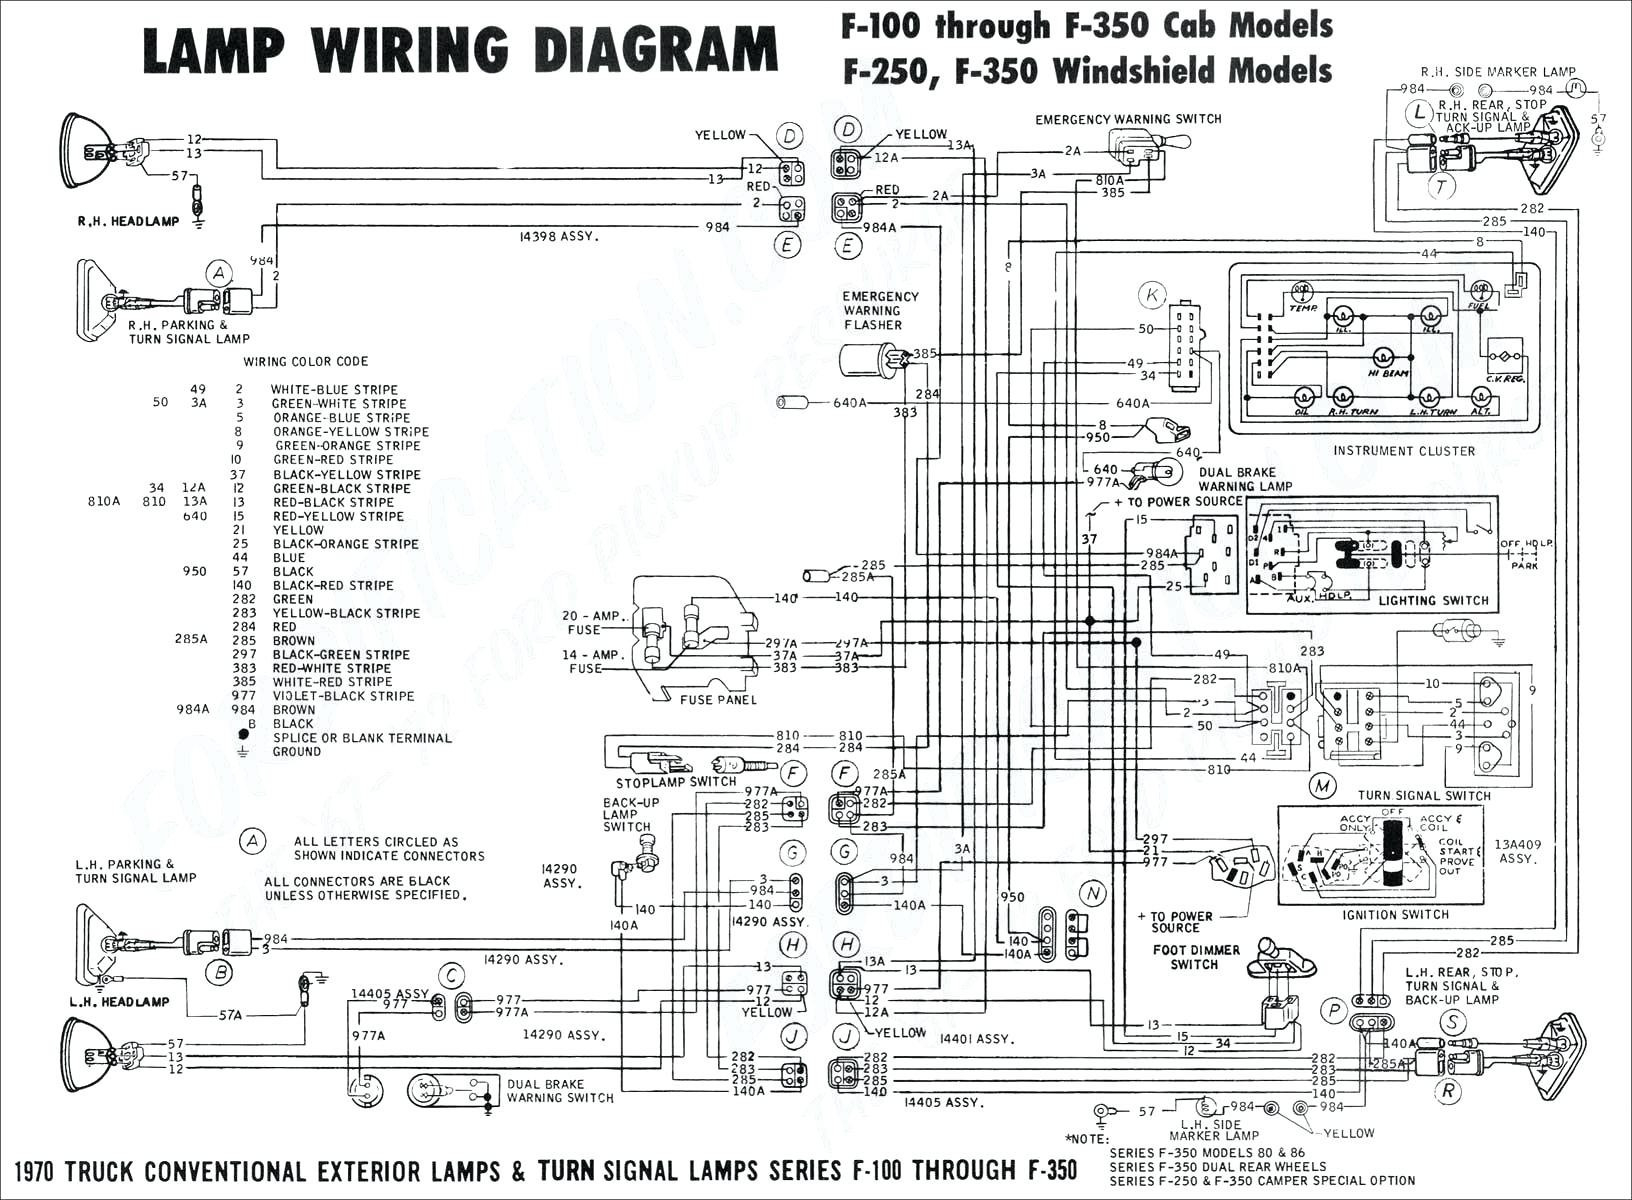 2000 ford windstar steering column diagram complete wiring diagrams u2022  rh oldorchardfarm co Ford Windstar Fuse